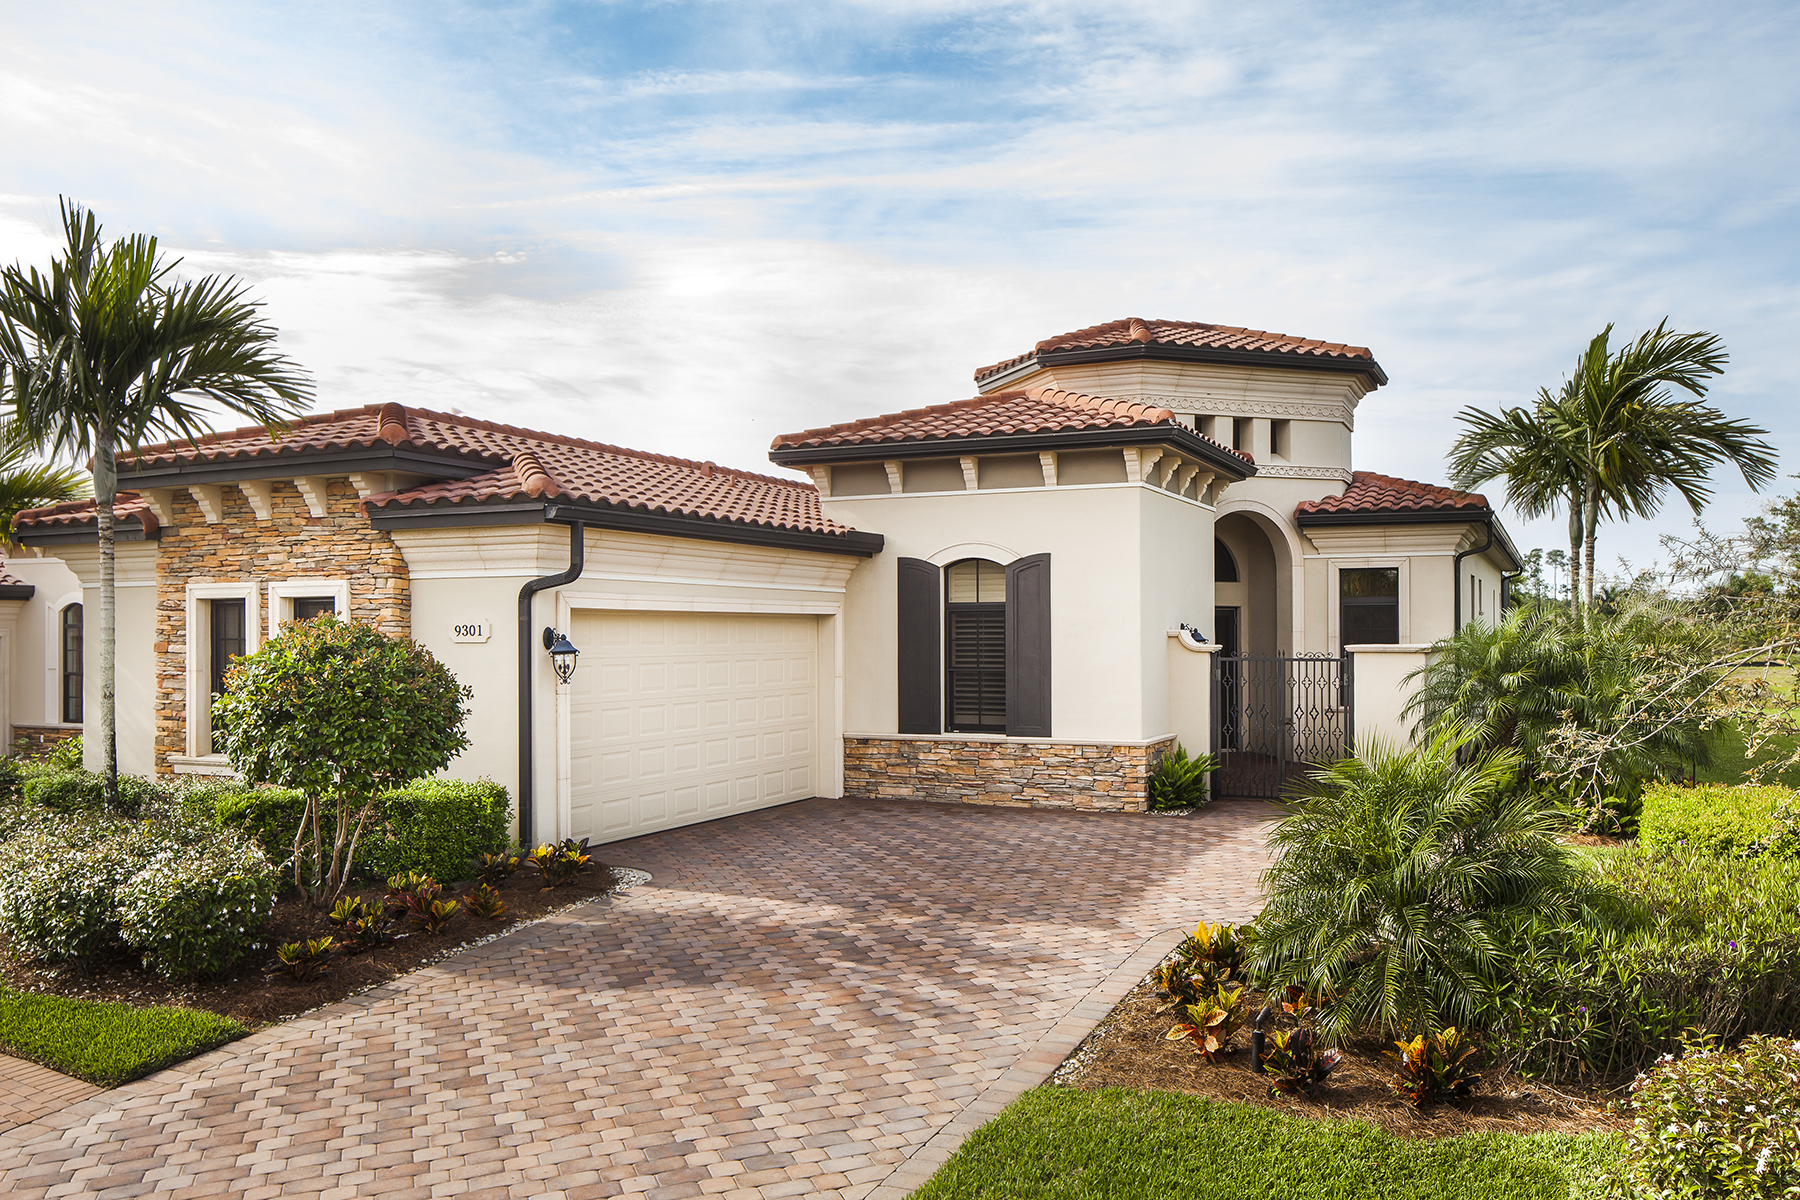 Single Family Home for Sale at TREVISO - VERCELLI 9301 Vercelli Ct, Naples, Florida 34113 United States